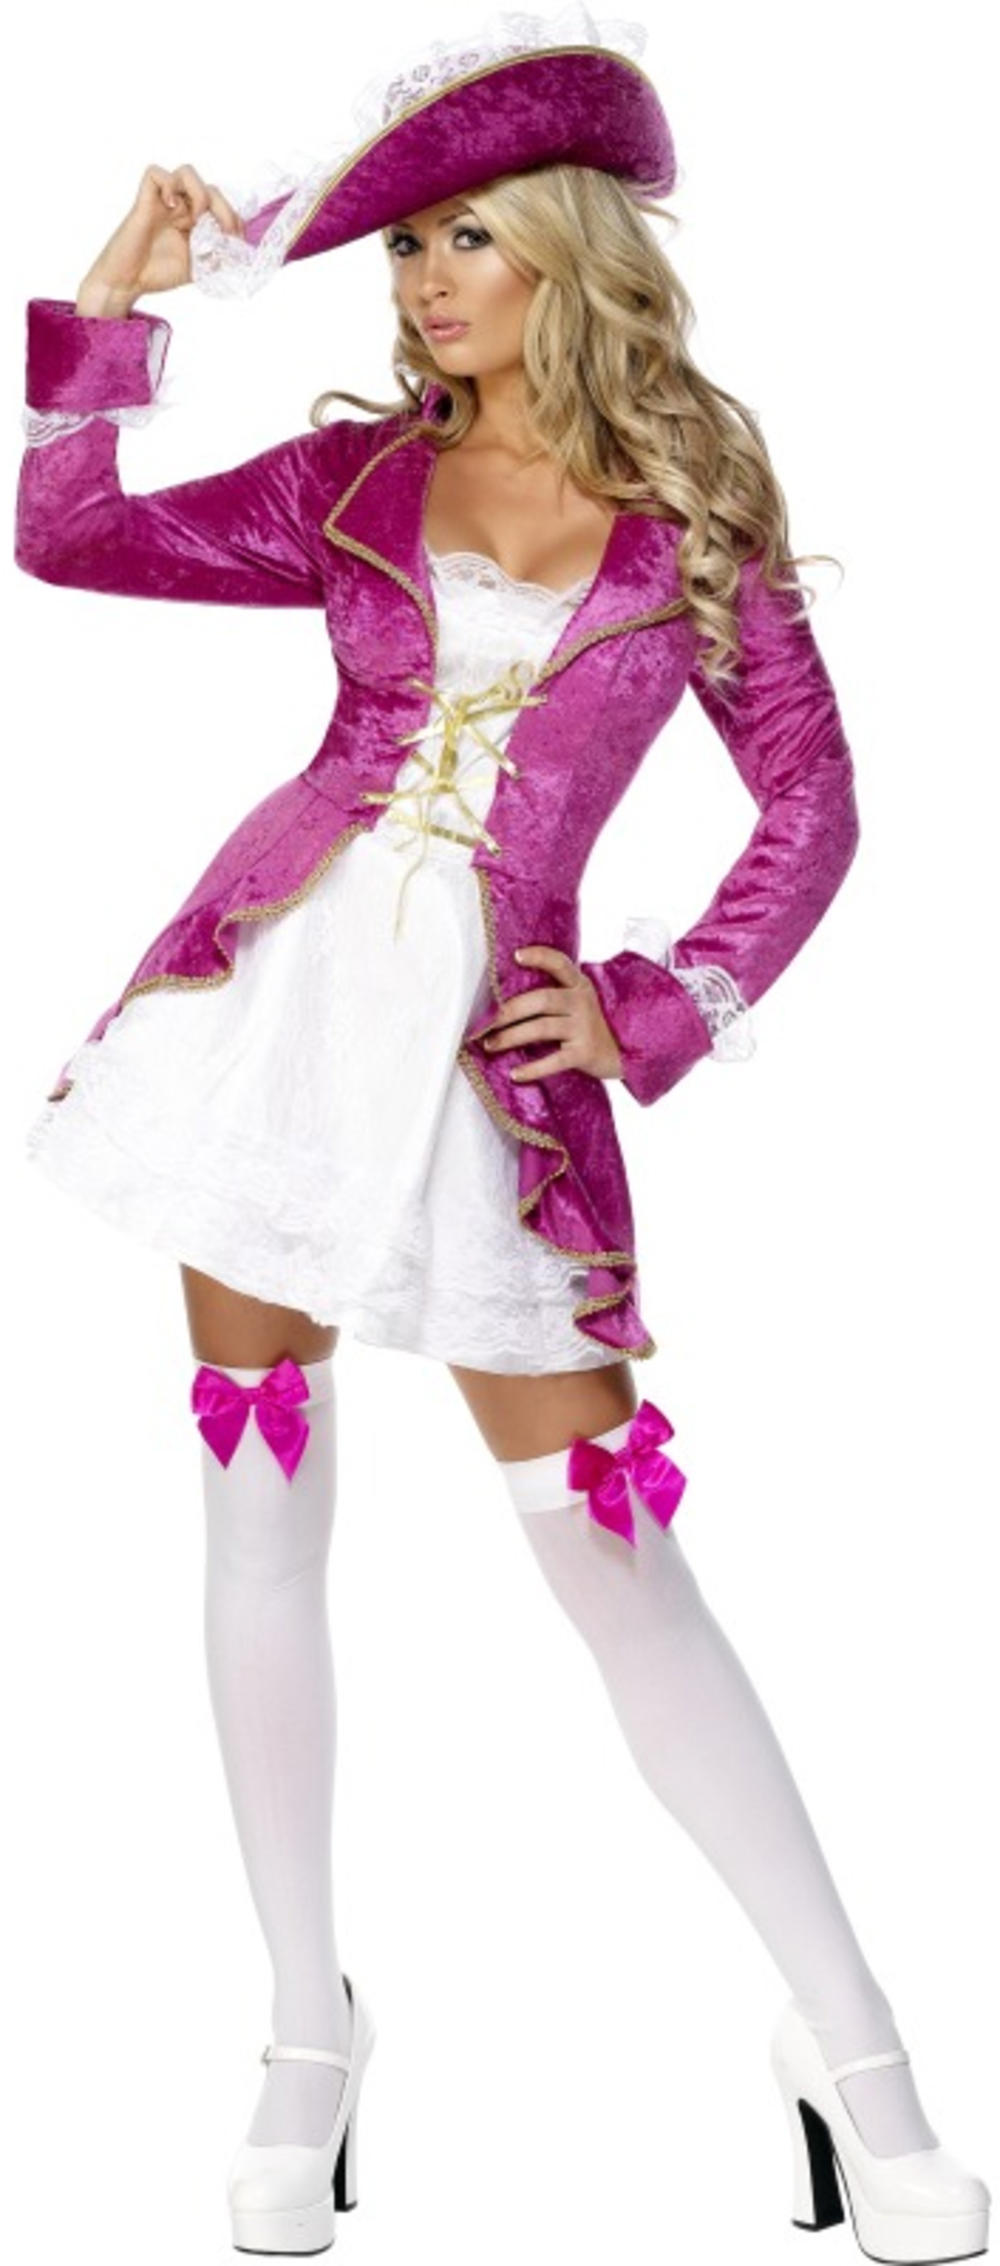 Pink Pirate Treasure Ladies Fancy Dress Pirates Womens Costume Adult Outfit New